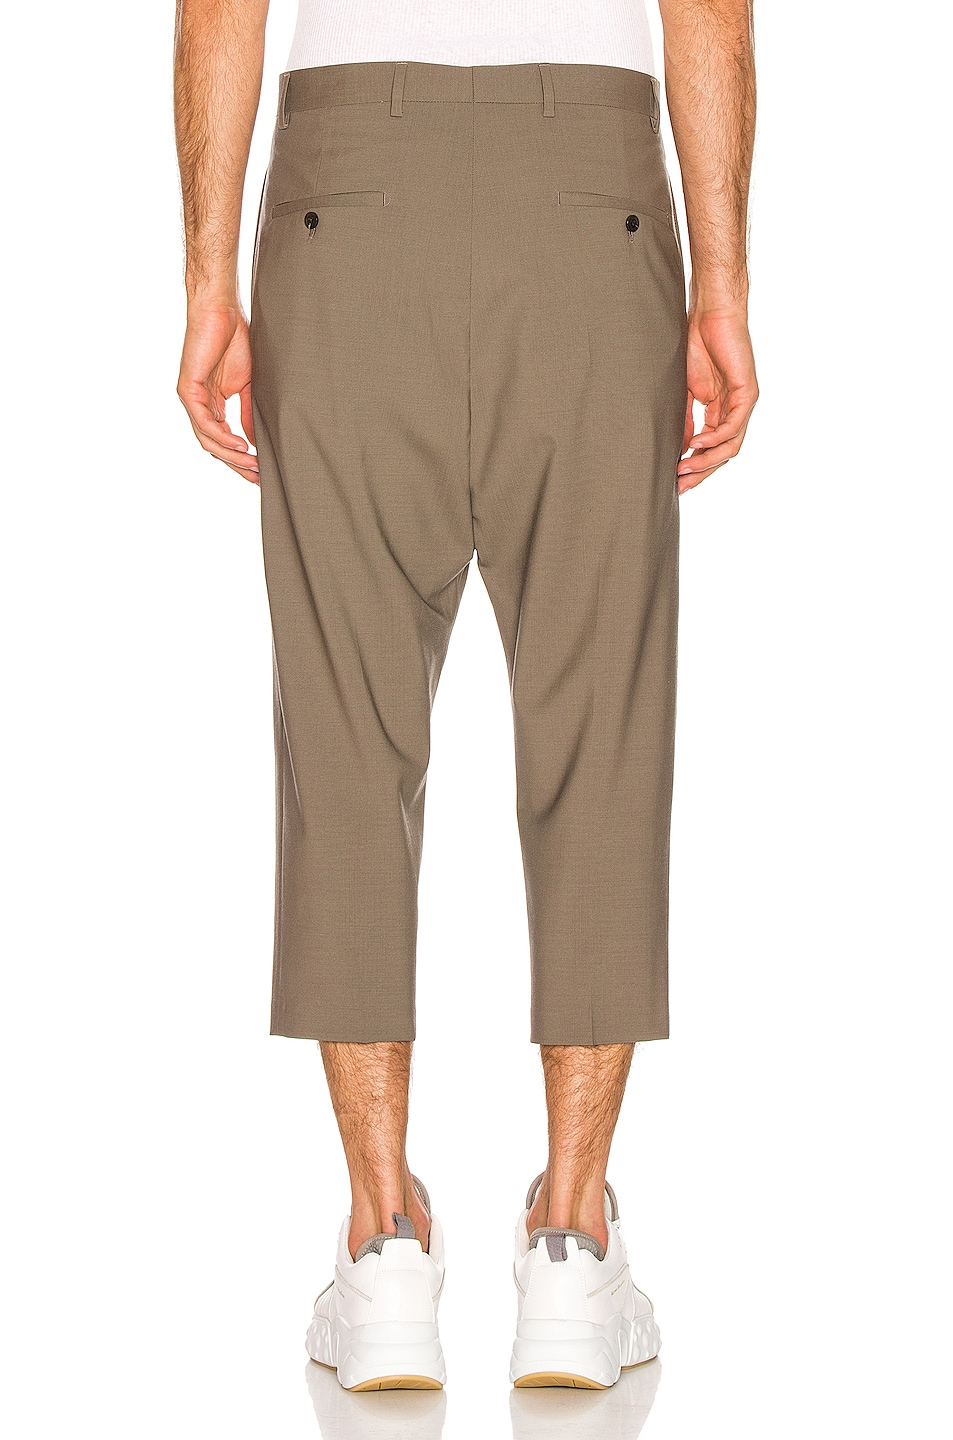 Image 3 of Rick Owens Cropped Astaire Trouser in Dust